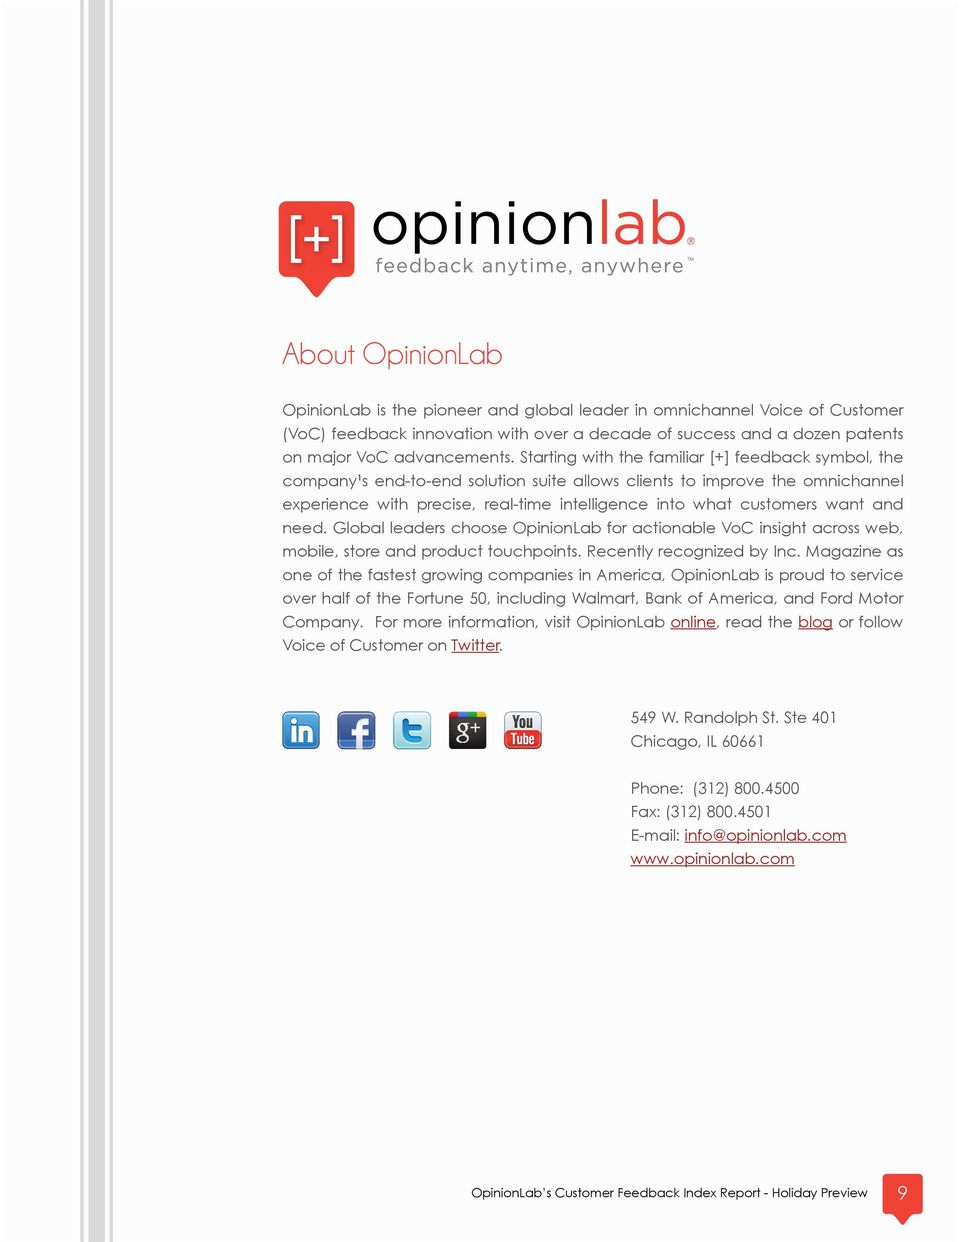 want and need. Global leaders choose OpinionLab for actionable VoC insight across web, mobile, store and product touchpoints. Recently recognized by Inc.